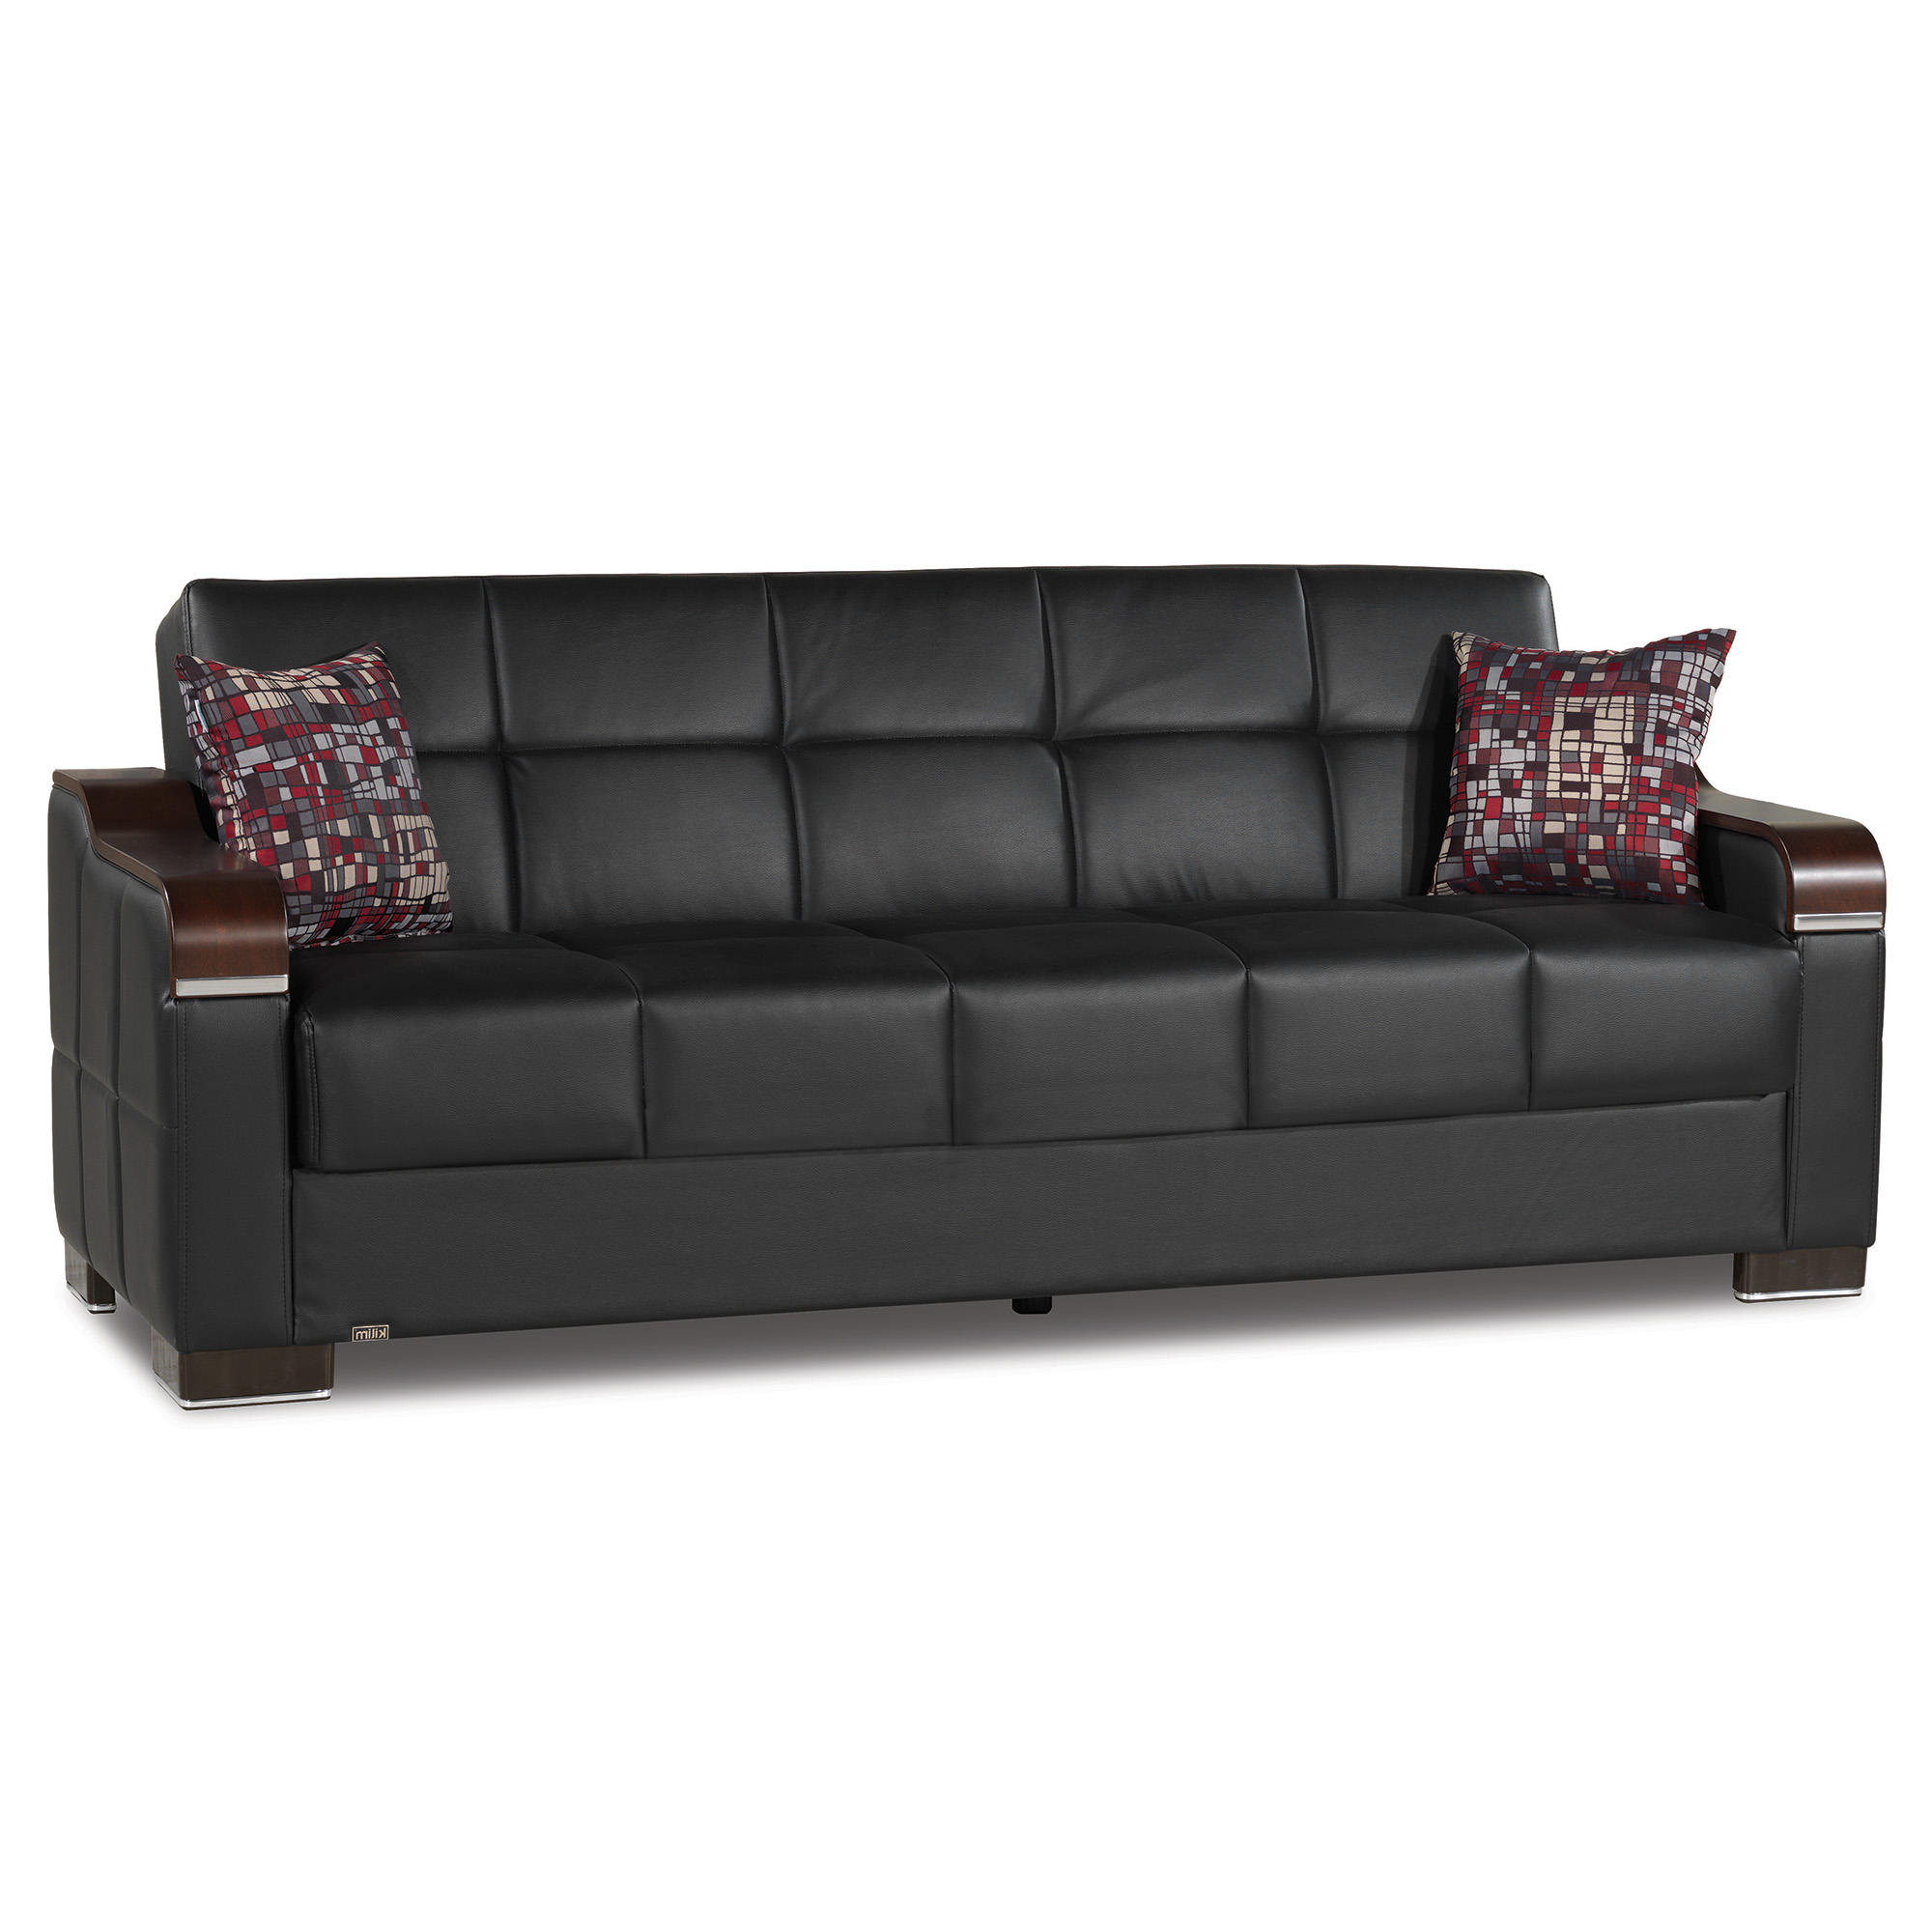 Hartford Storage Sectional Futon Sofas Pertaining To Recent Uptown Leather Wooden Accent Arm Sleeper Sofa Bed With (View 2 of 20)